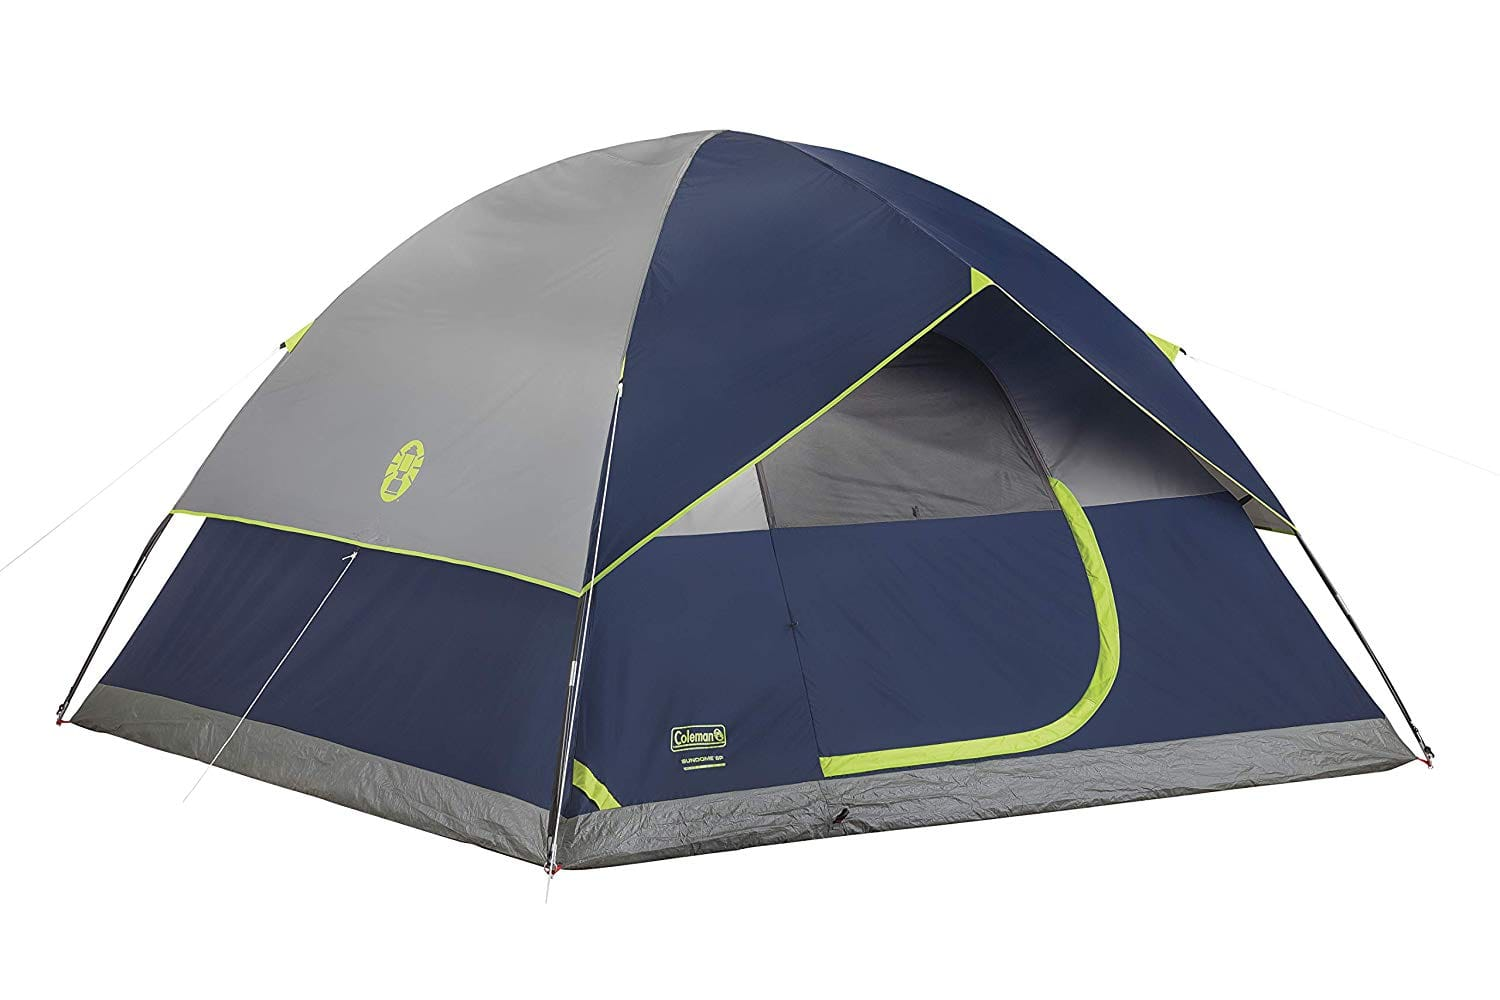 Coleman Sundome 6 Tent F/S with Prime $67